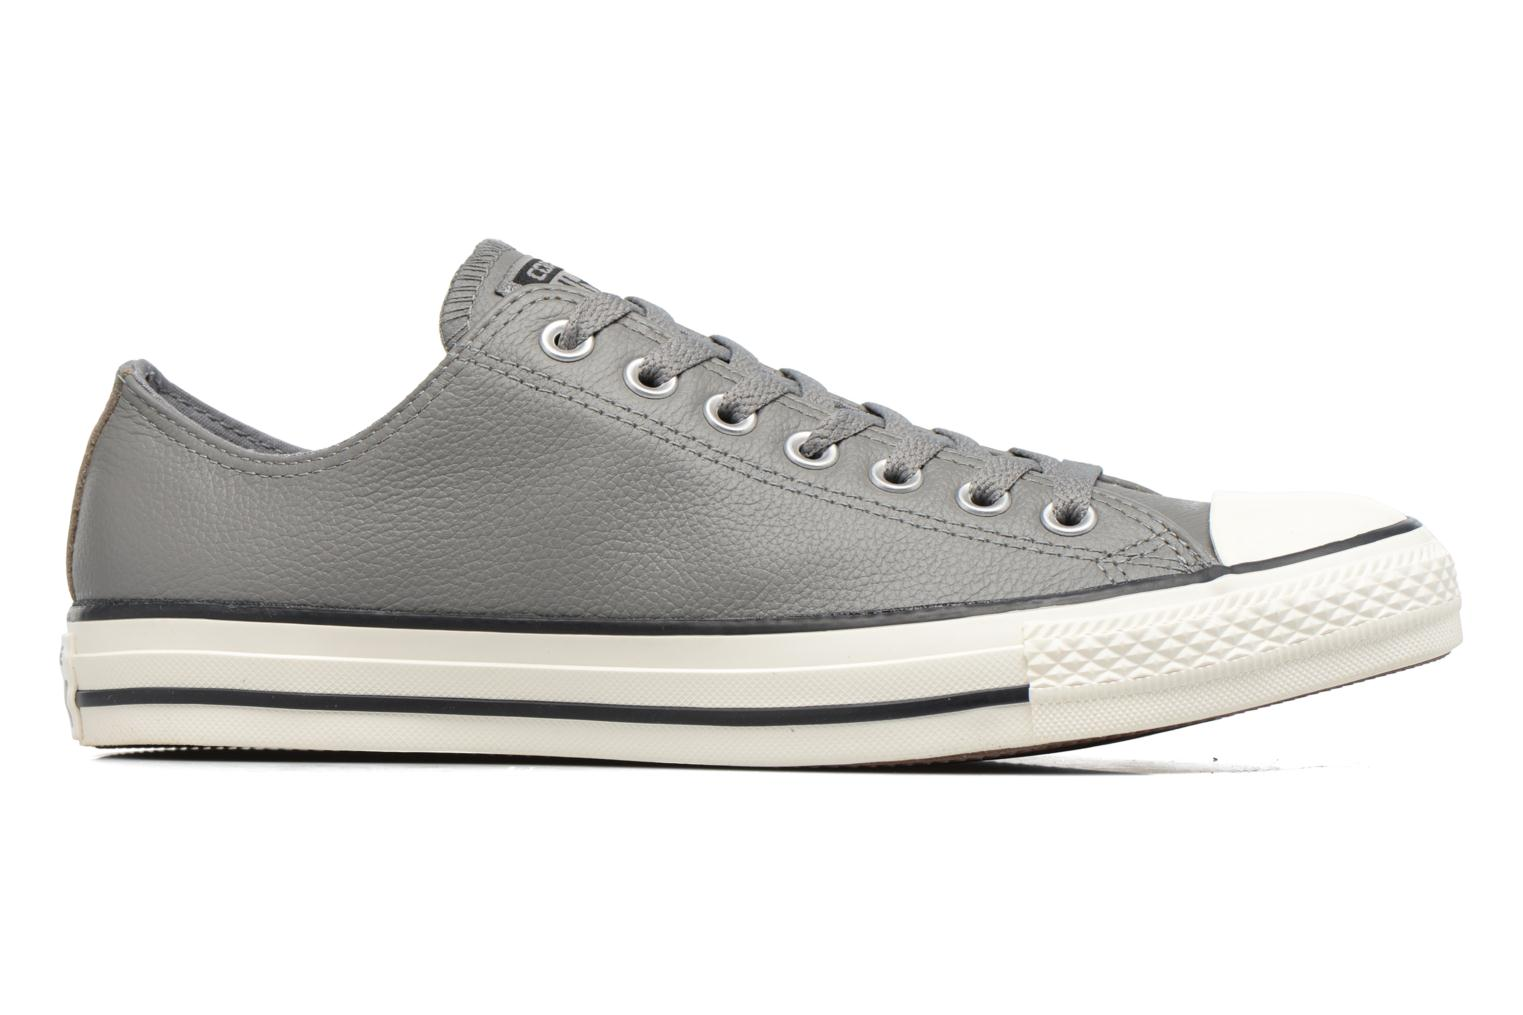 Baskets Converse Chuck Taylor All Star Tumble Leather Ox Gris vue derrière